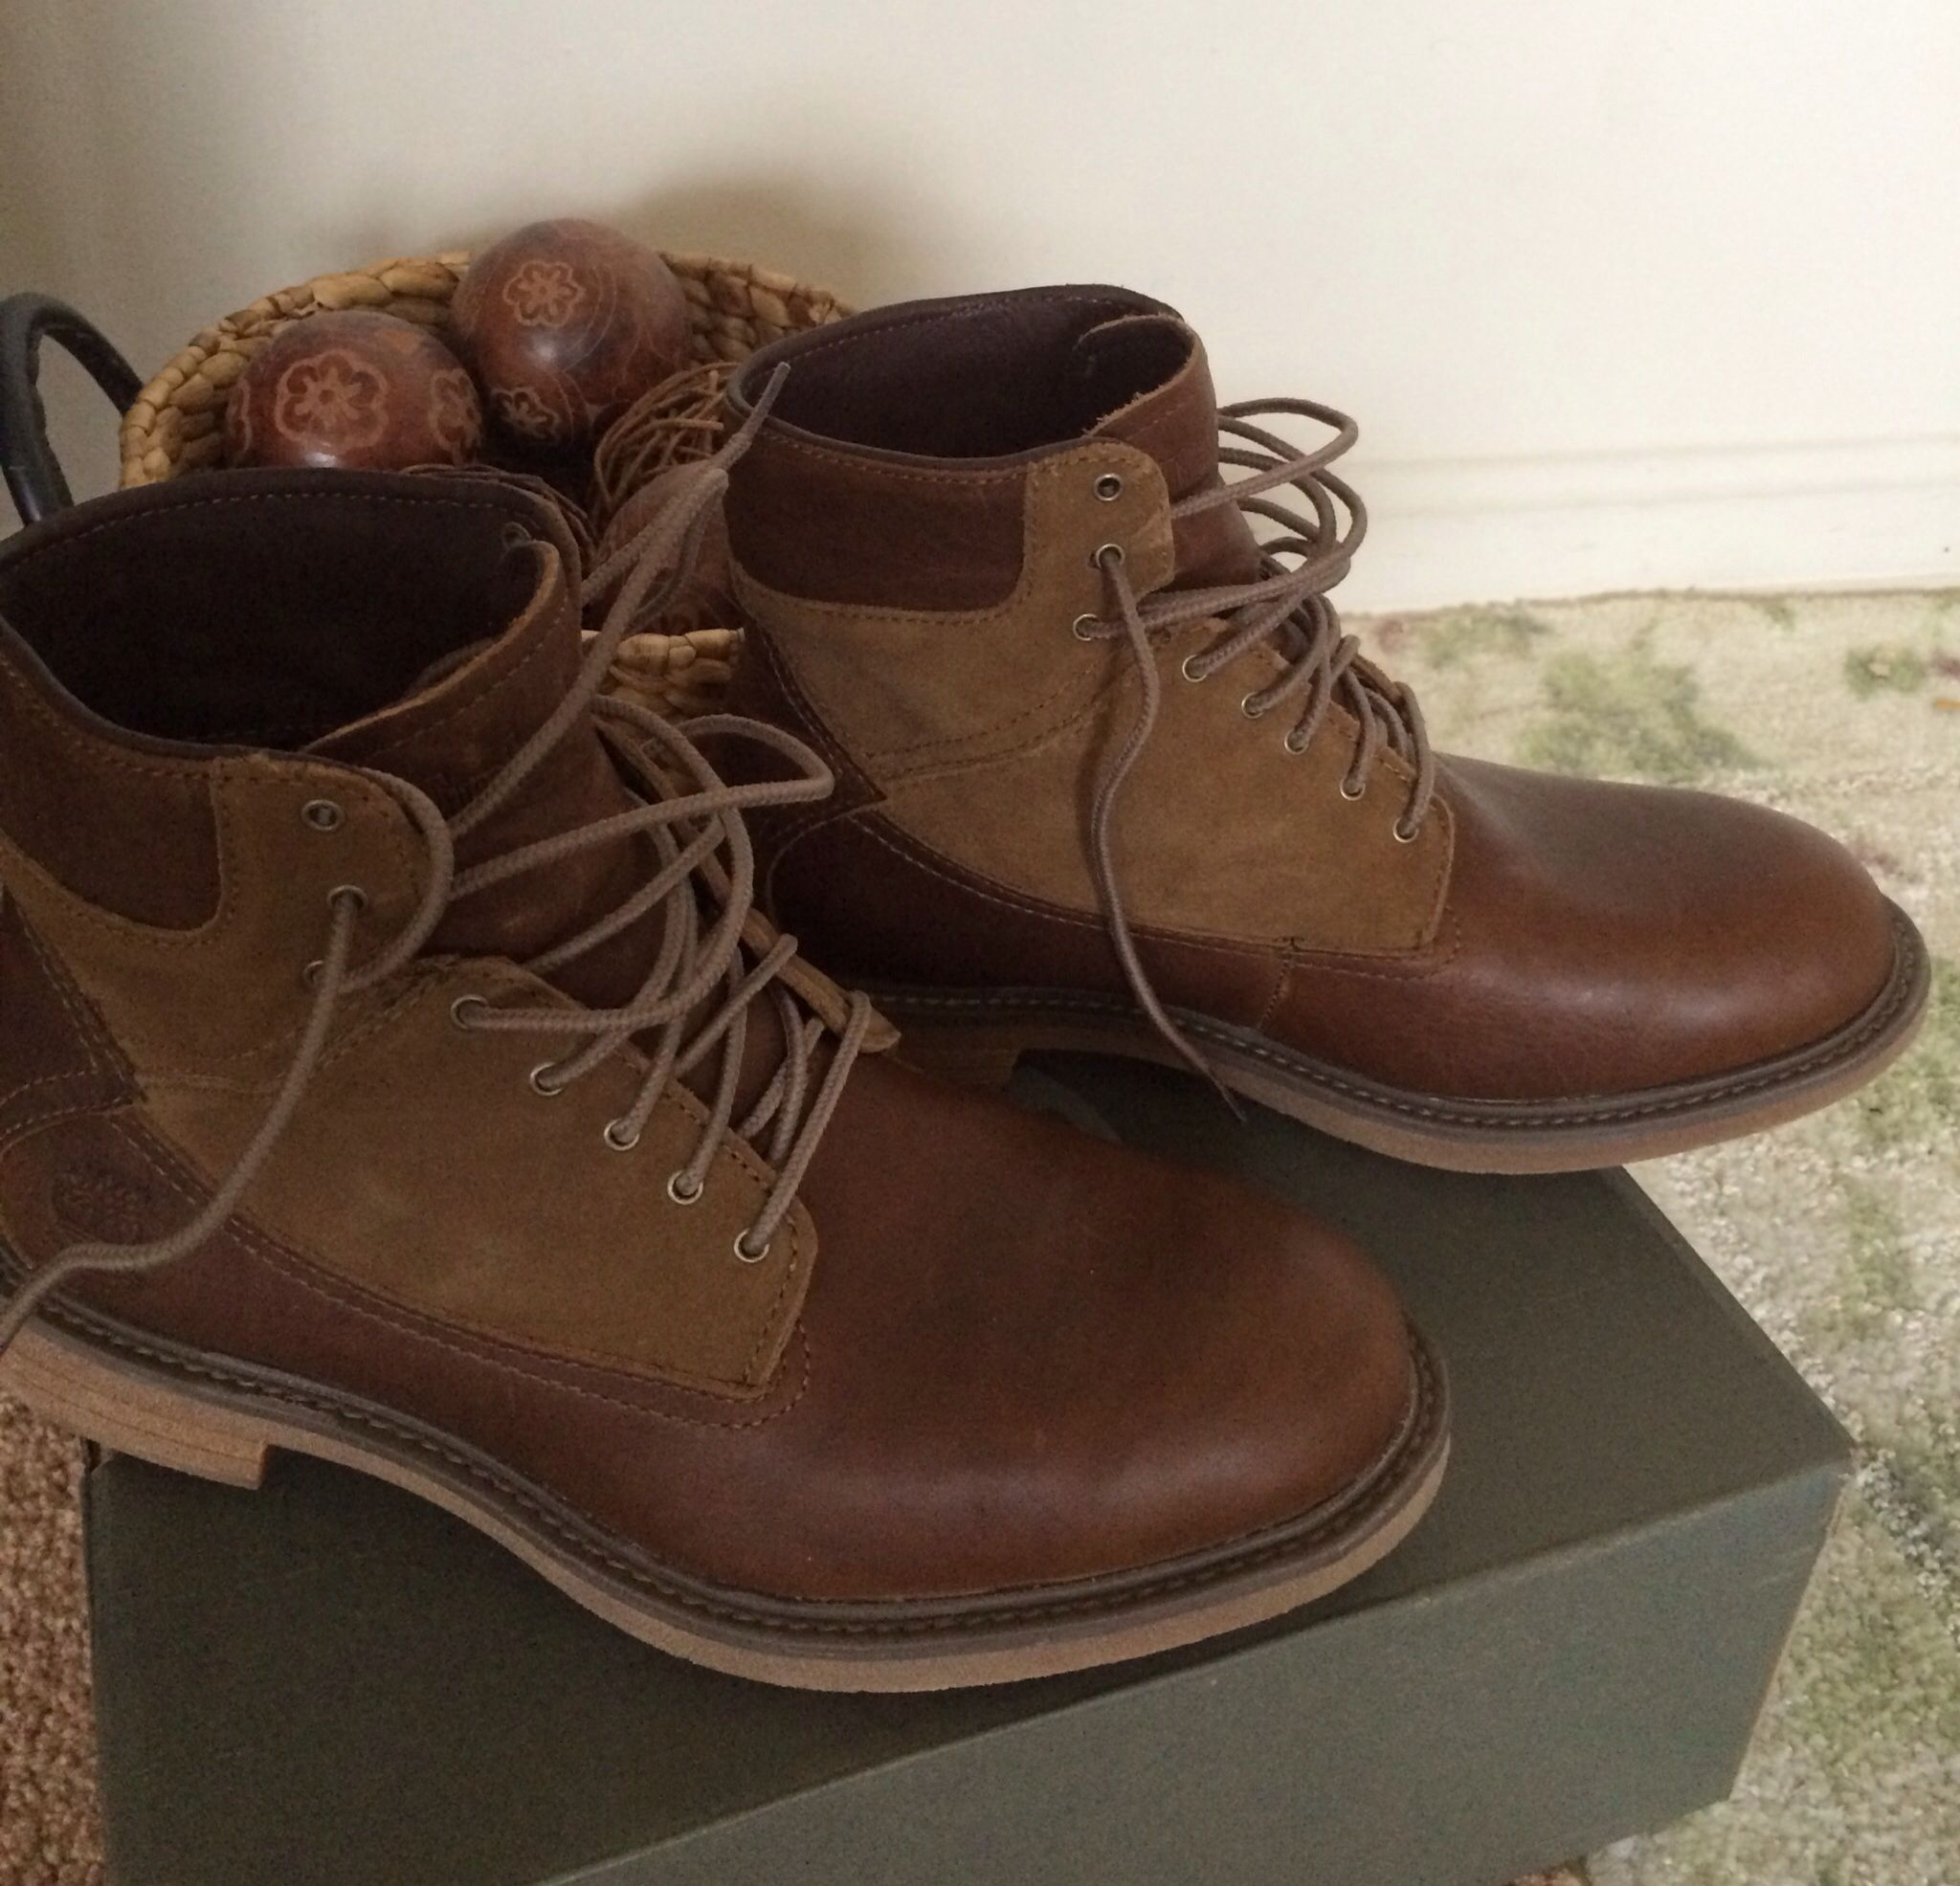 Boots Pinterest 316f6 Earthkeepers Timberland 394ac